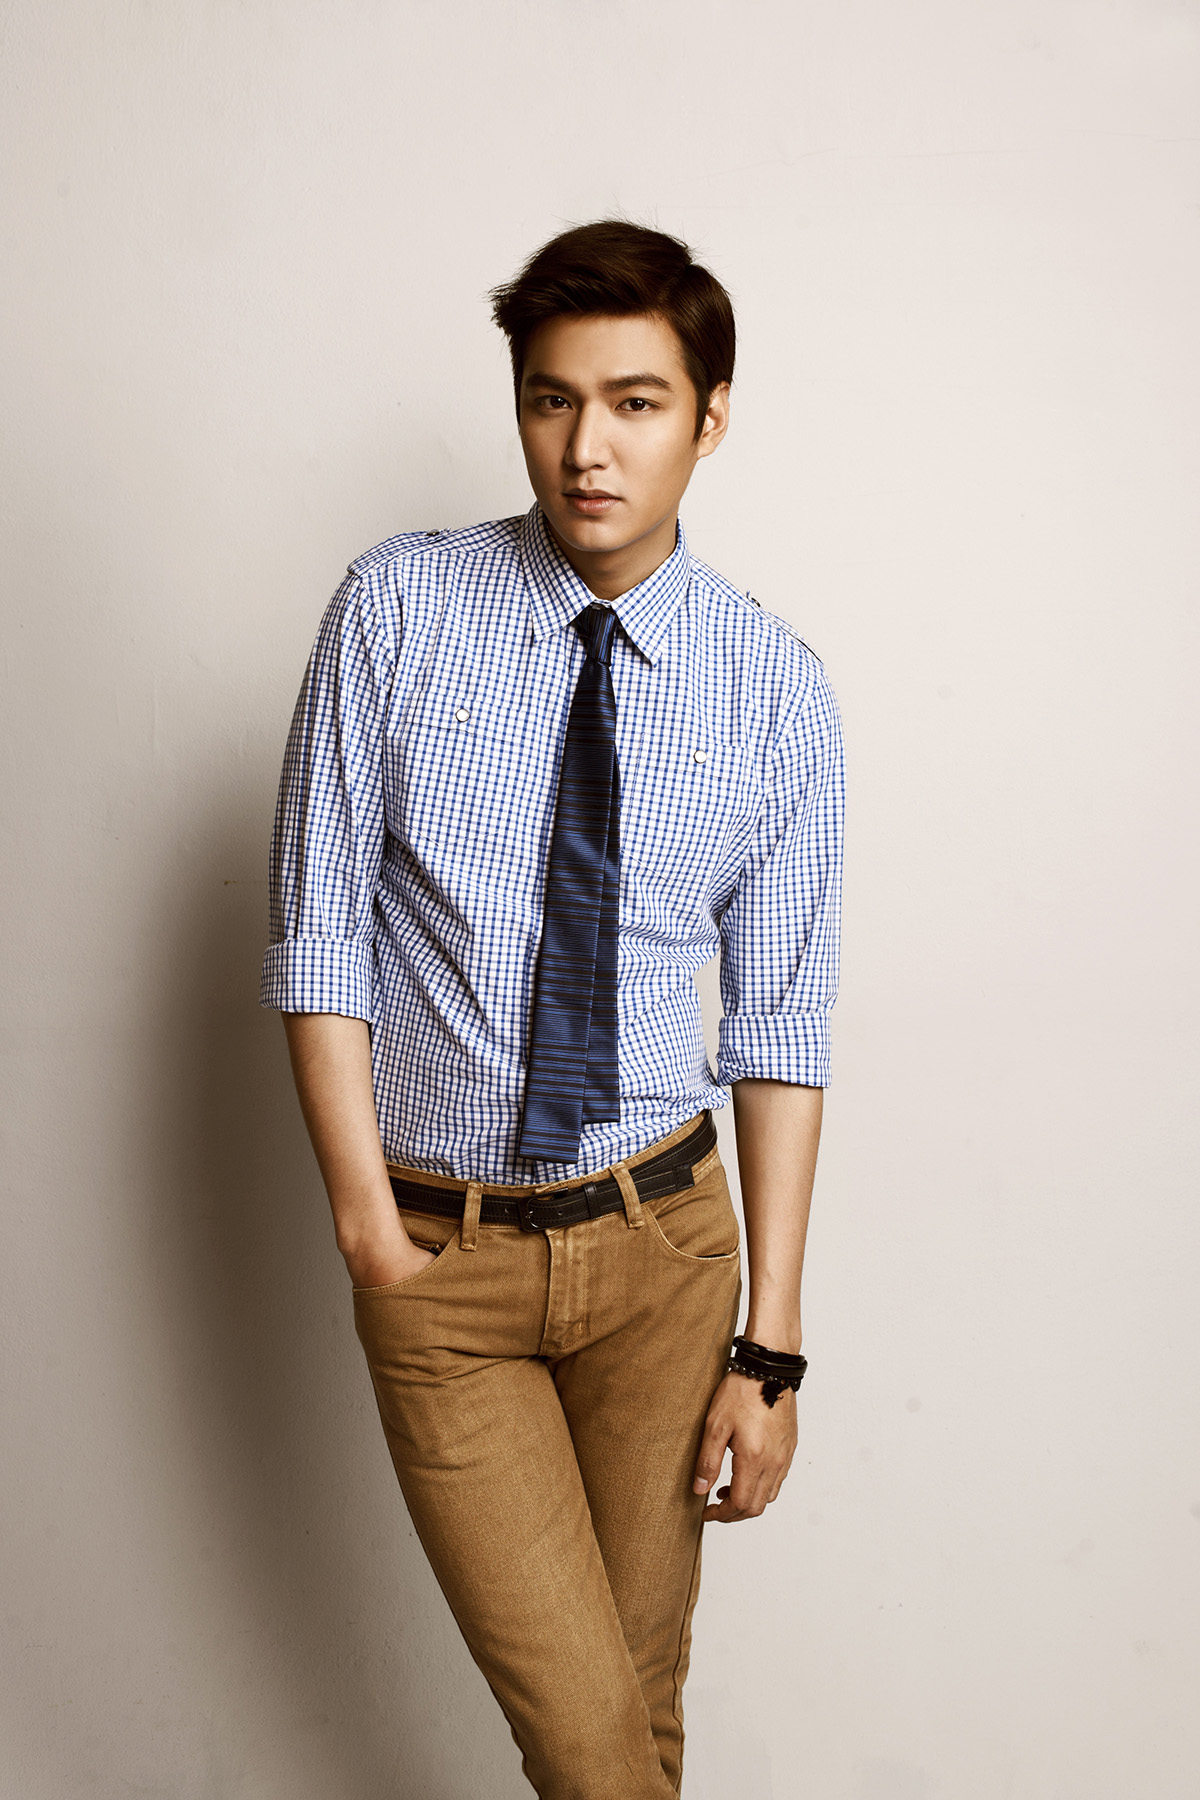 from Nelson lee min ho dating 2013